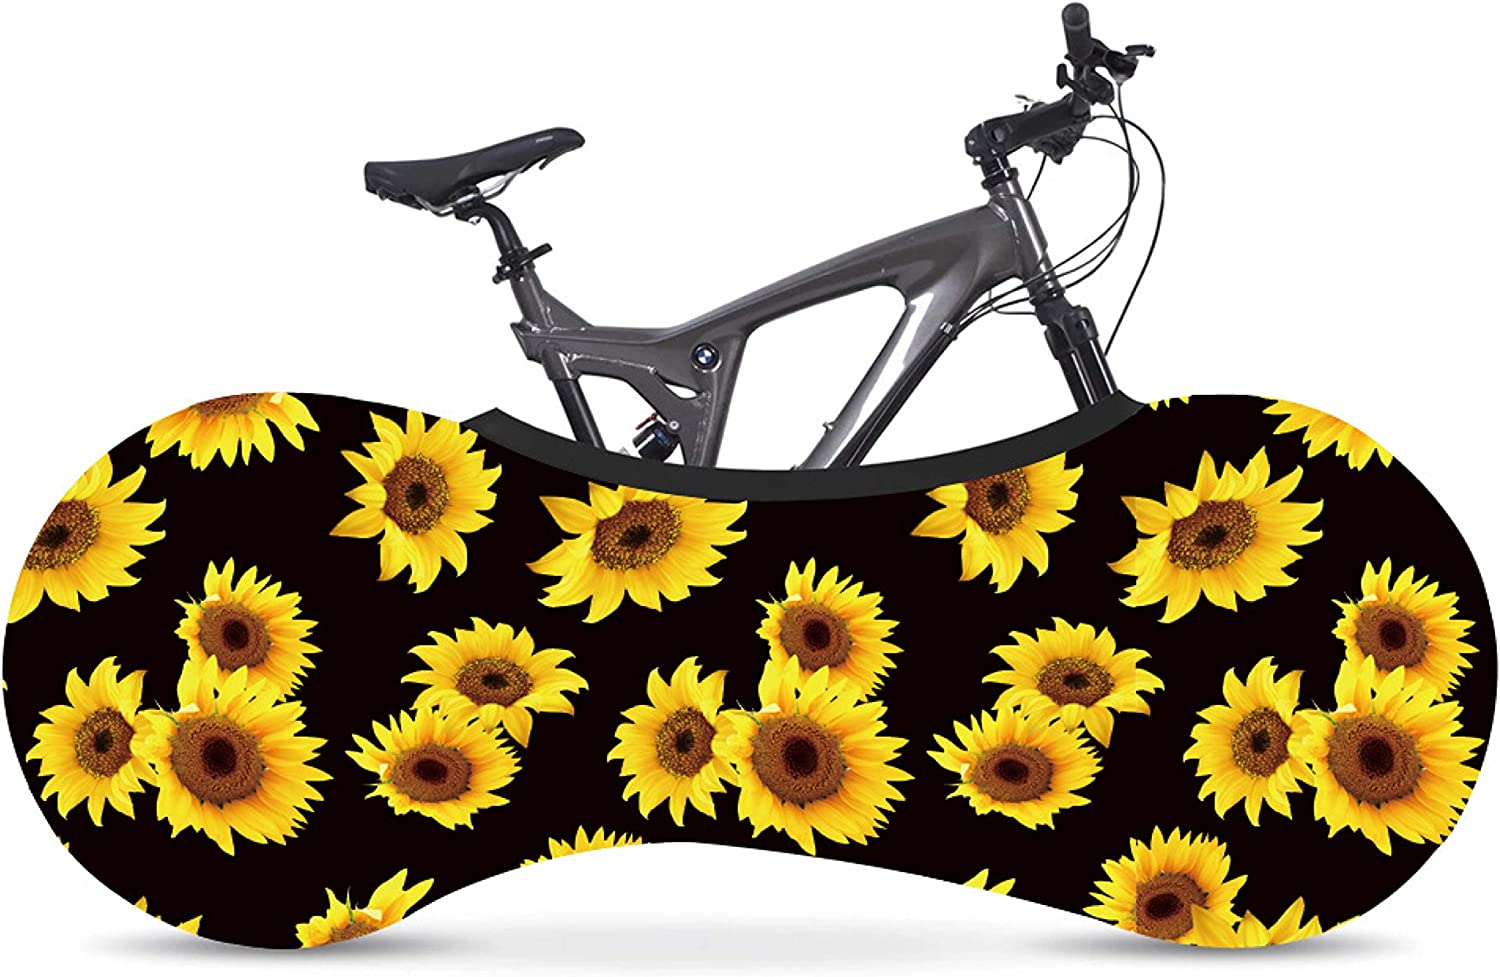 Indoor Cover for Storage and Transportation,Washable Elastic Bike Wheel Cover Anti-Scratch Gear Wheel Tire Package for Adult Bike PS Planet Sister Bike Wheel Cover